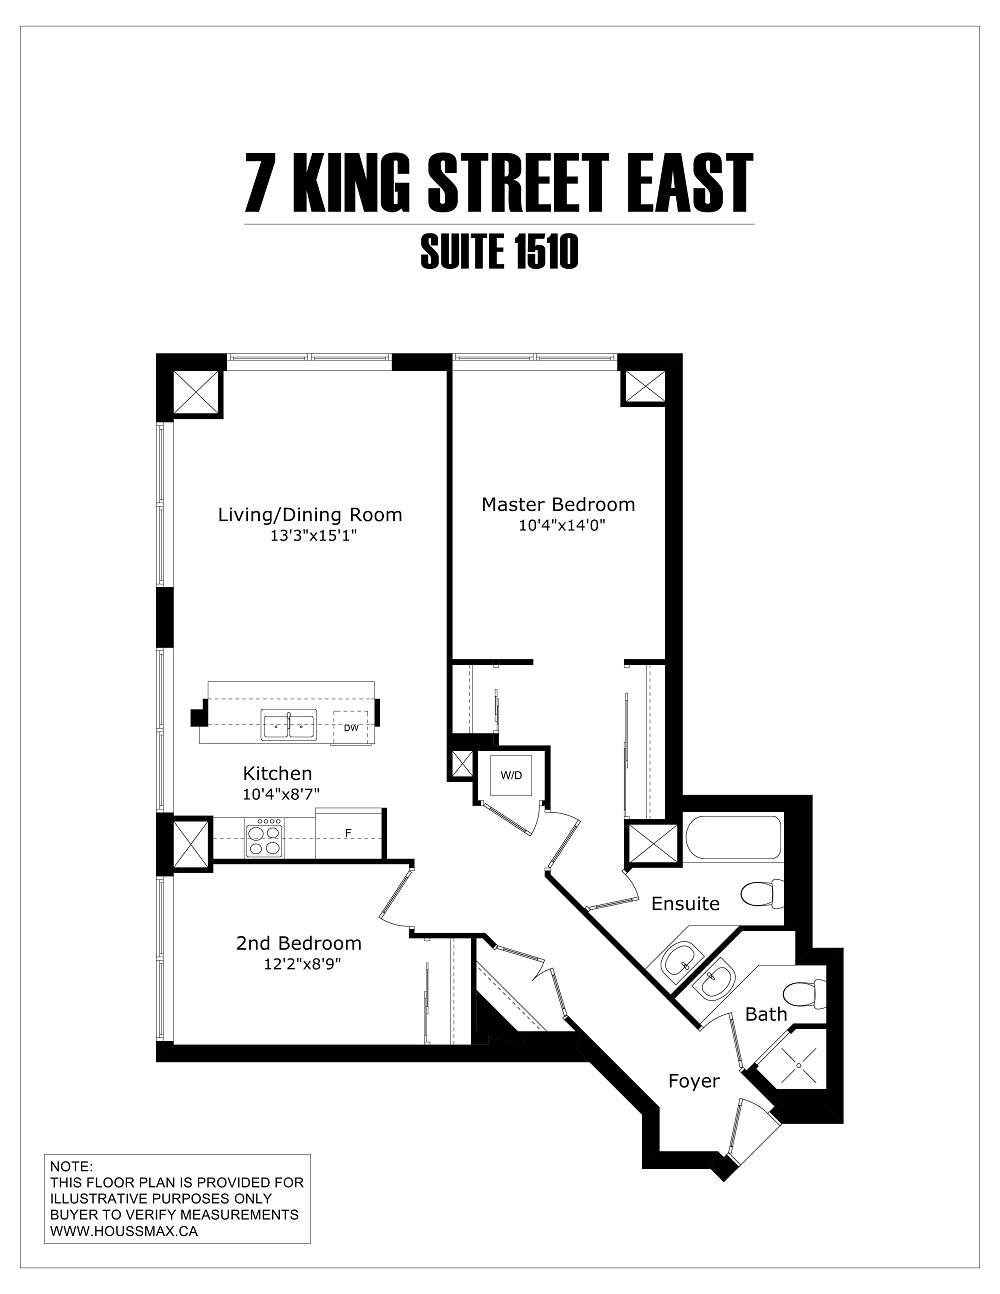 Floor plans for 7 King Street East.